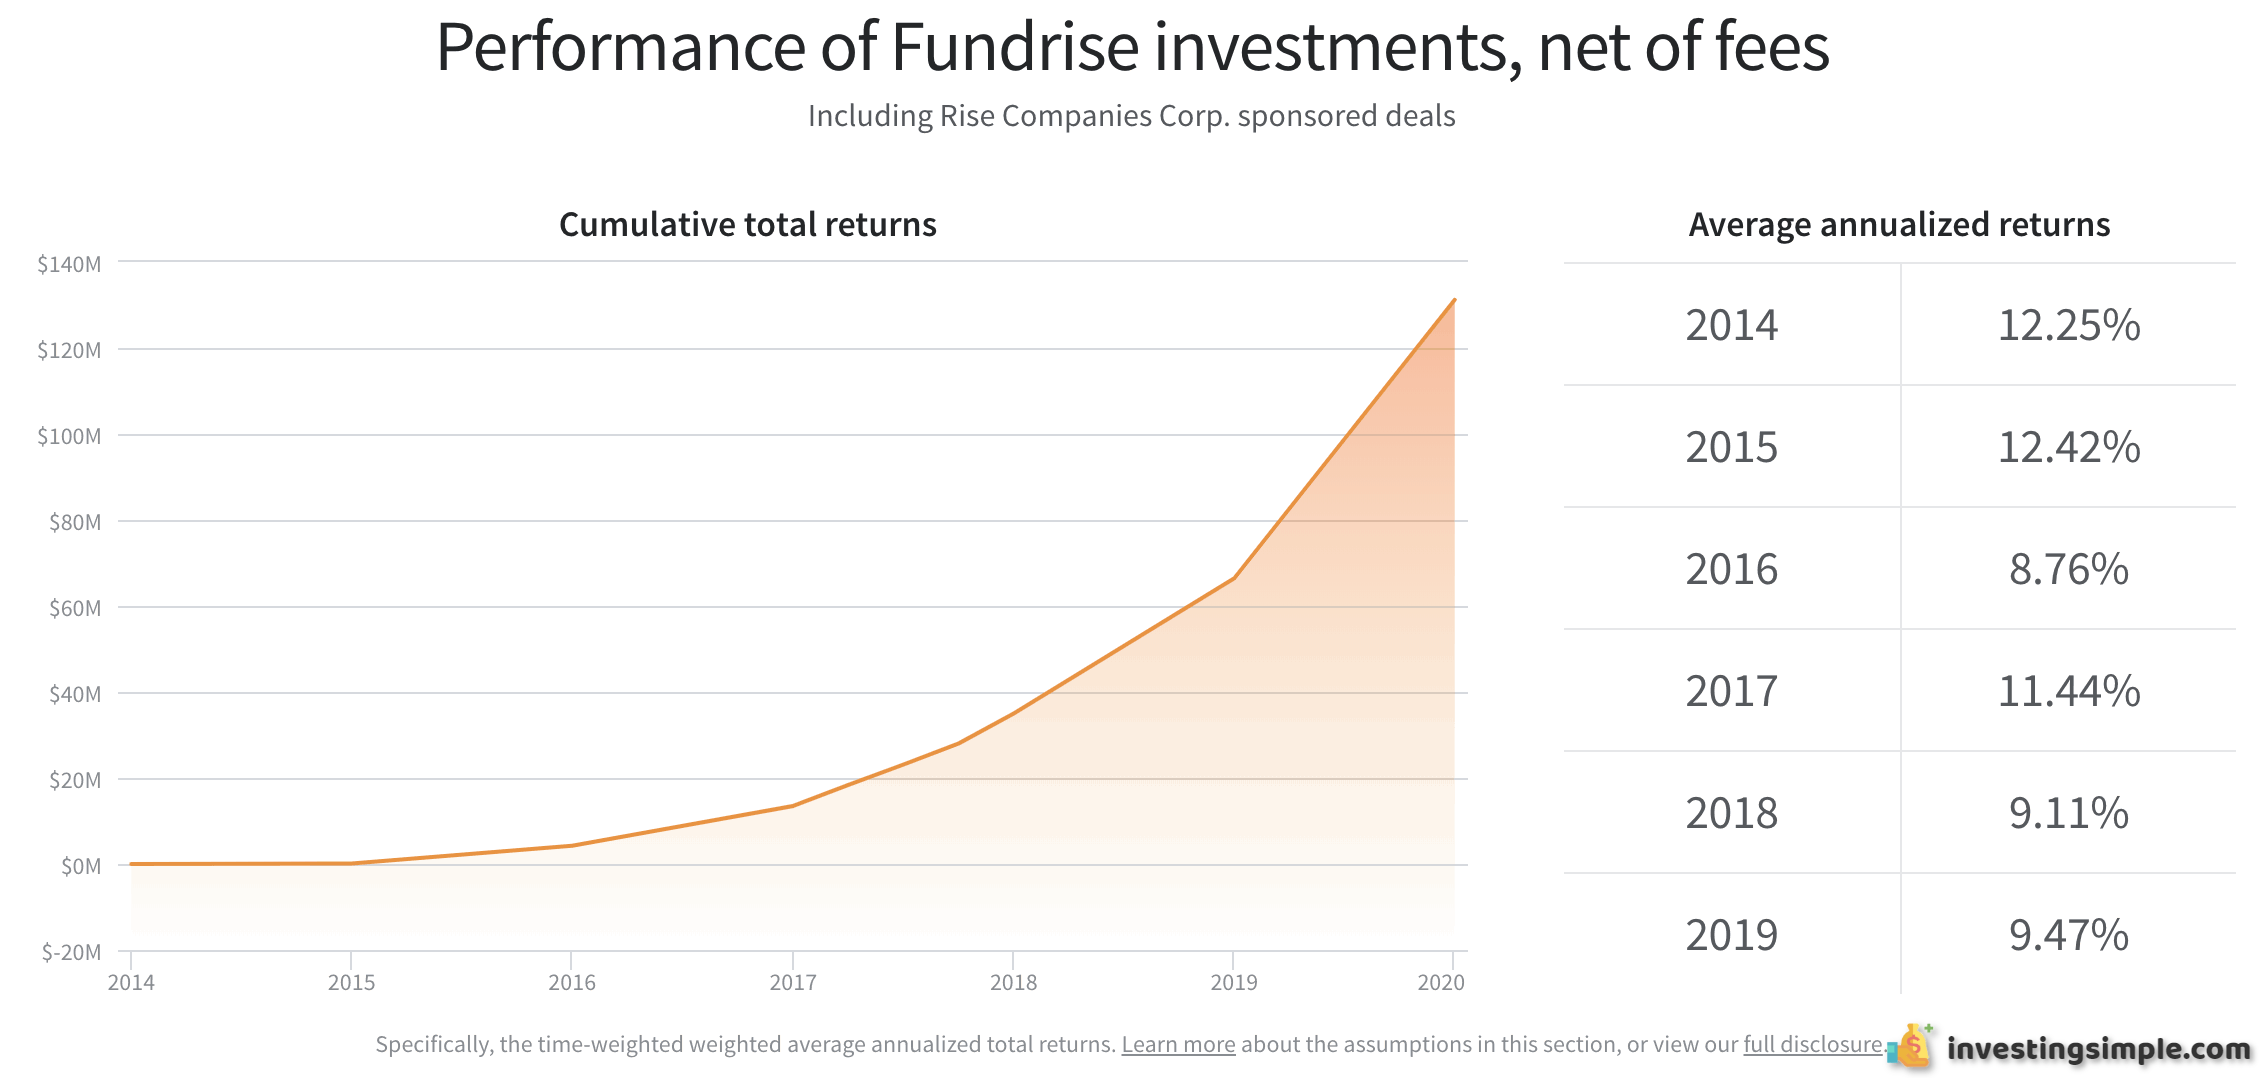 Fundrise historical returns updated to show 2019